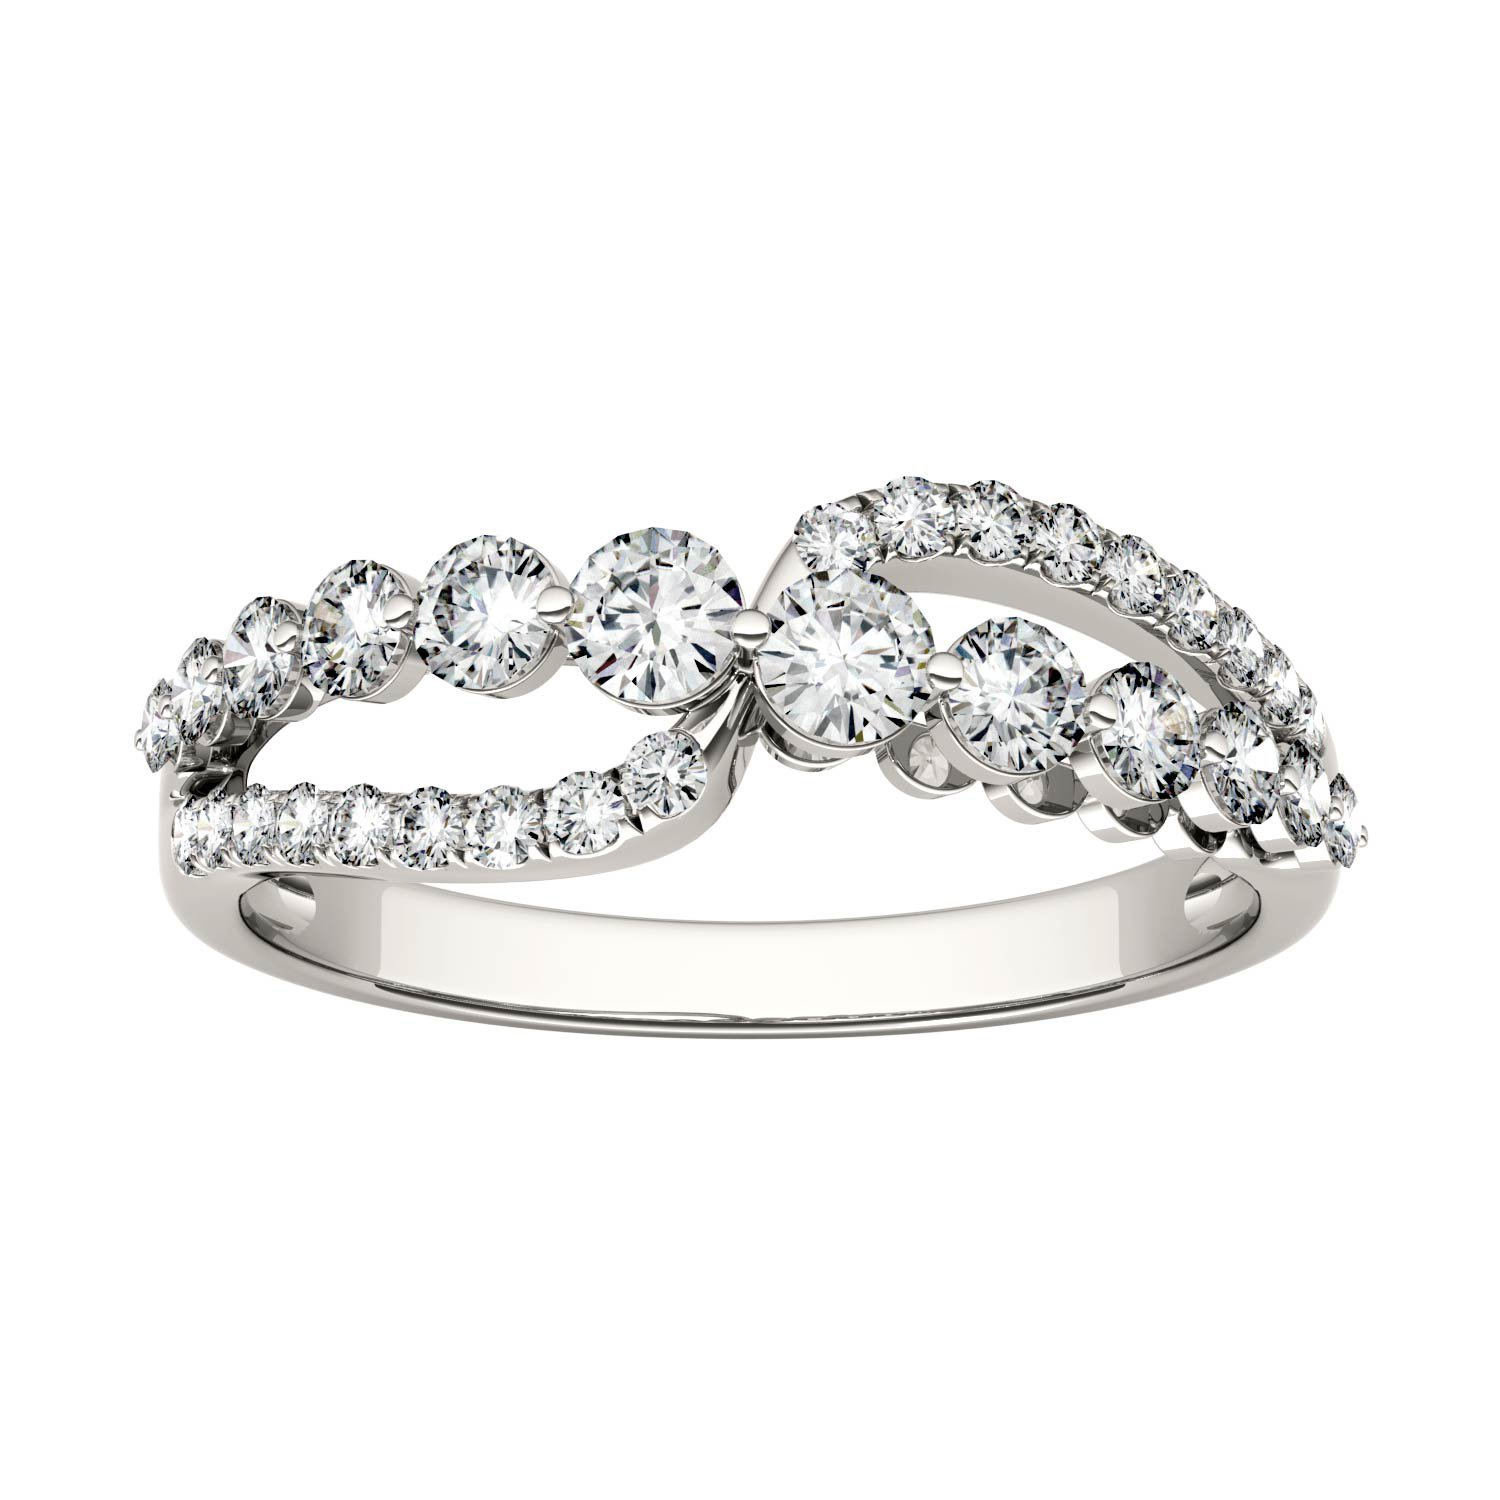 Forever Brilliant Round 3.0mm Moissanite Band Style Ring-size 7, 0.64cttw DEW By Charles & Colvard